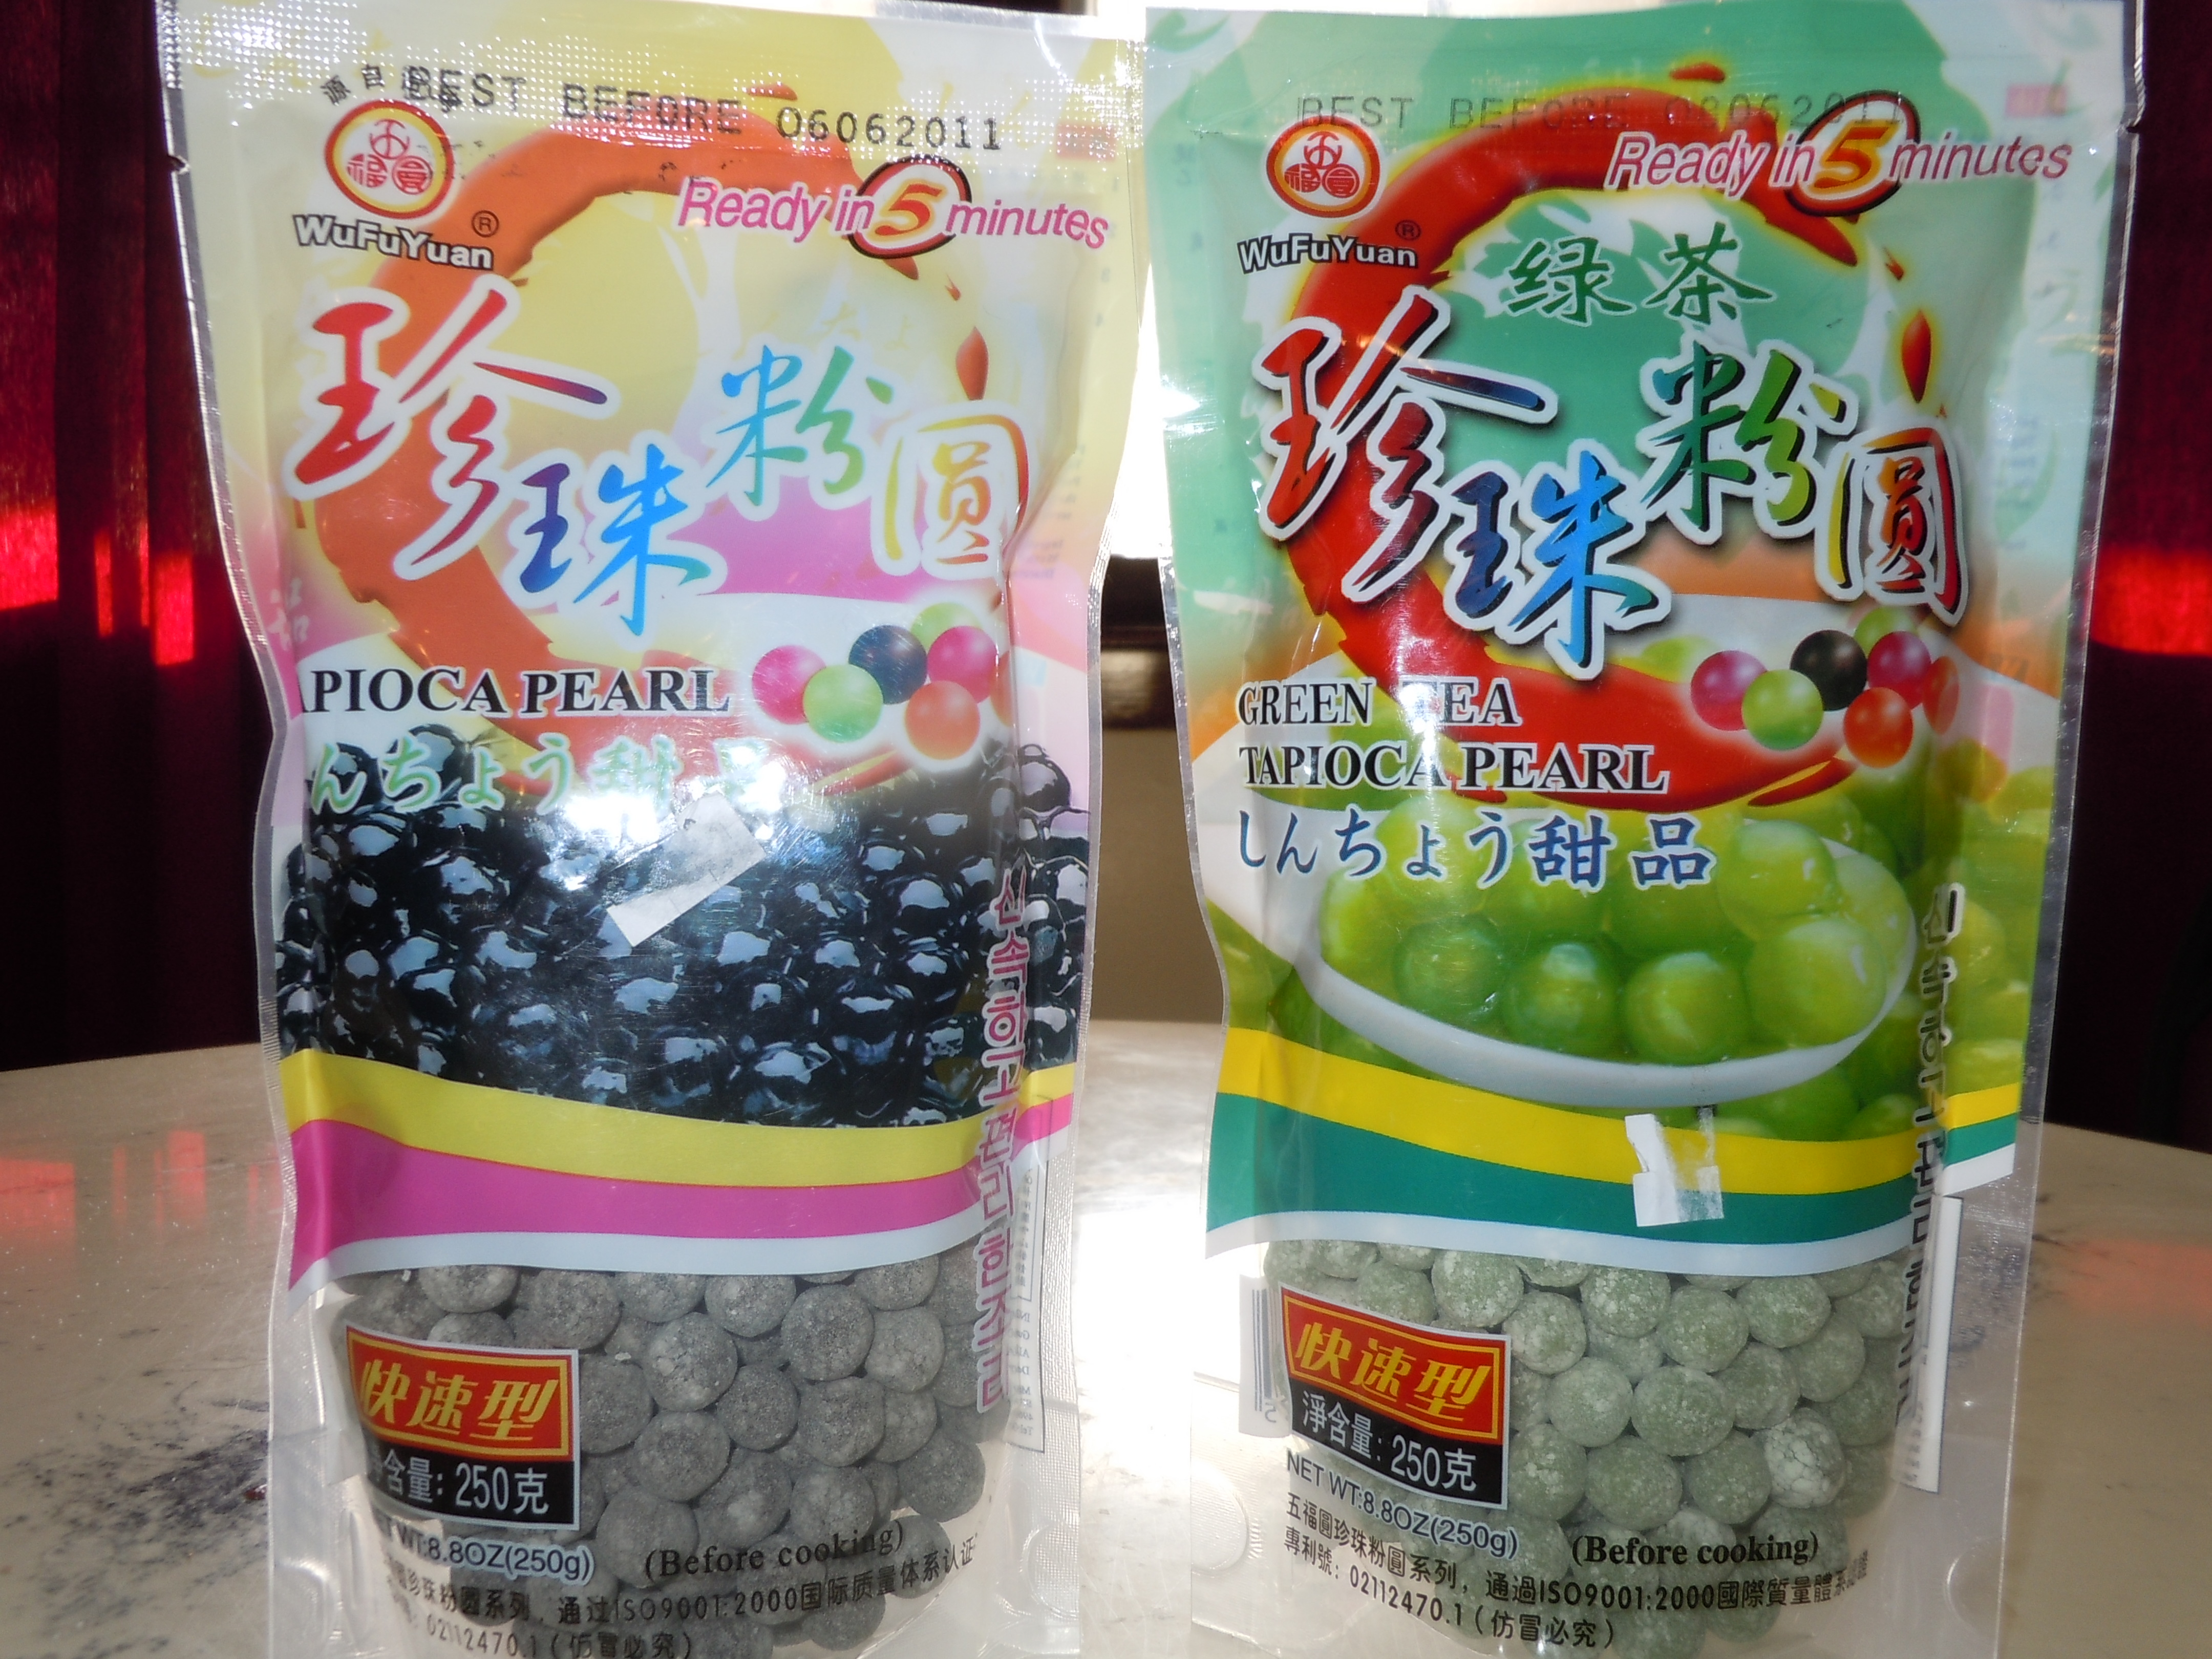 Is Sago the Same as Tapioca Pearl?